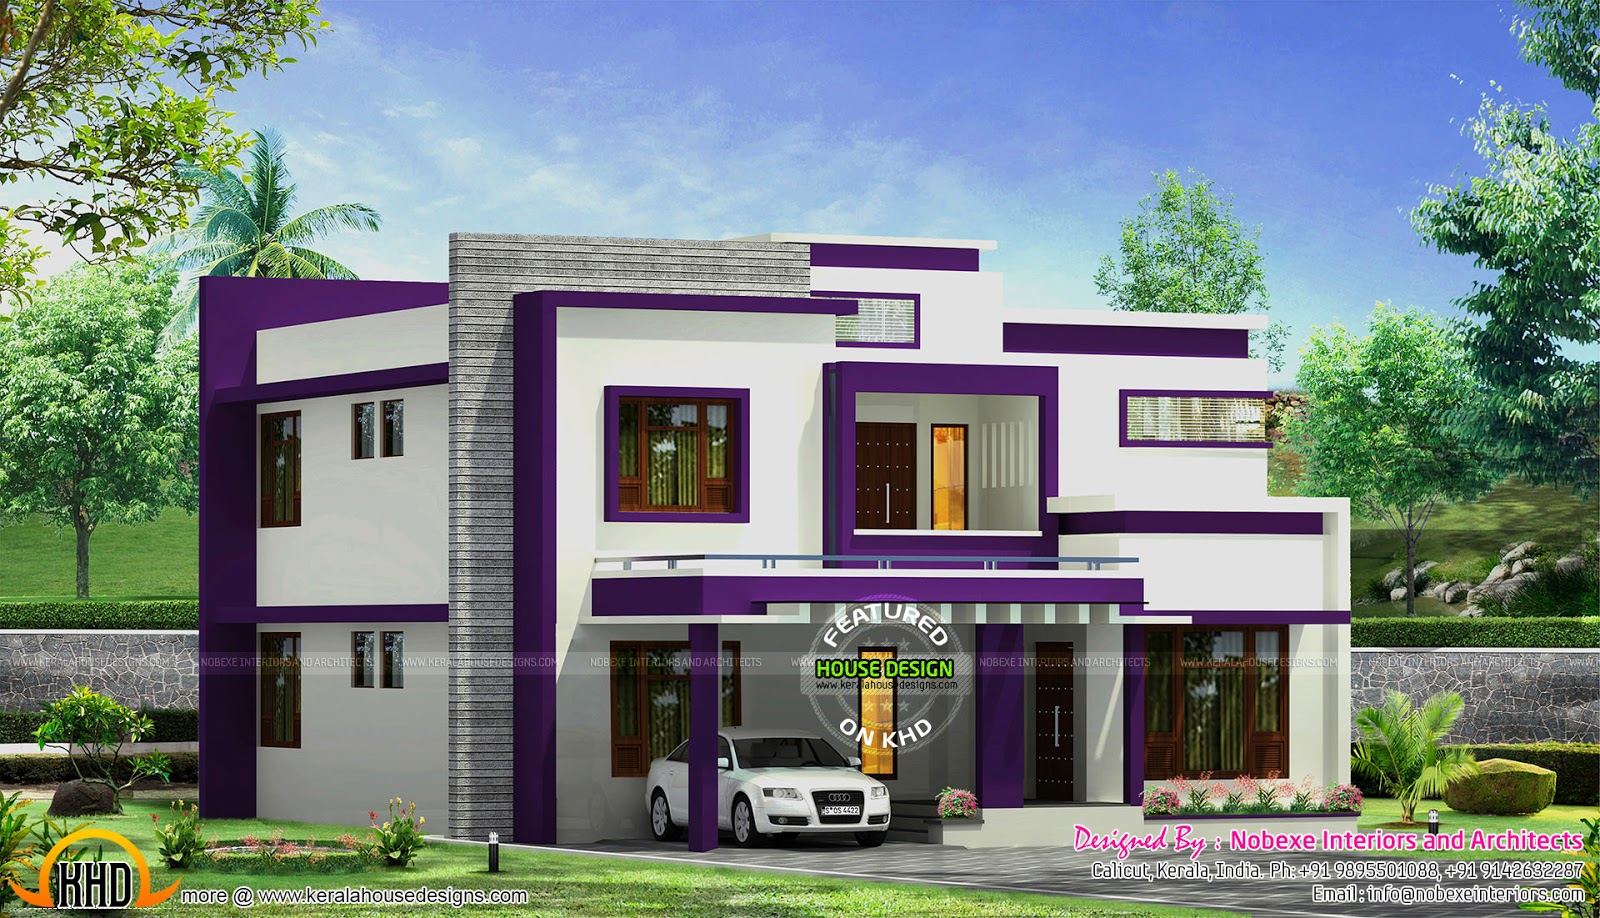 Contemporary home design by nobexe interiors kerala home for Latest modern home designs